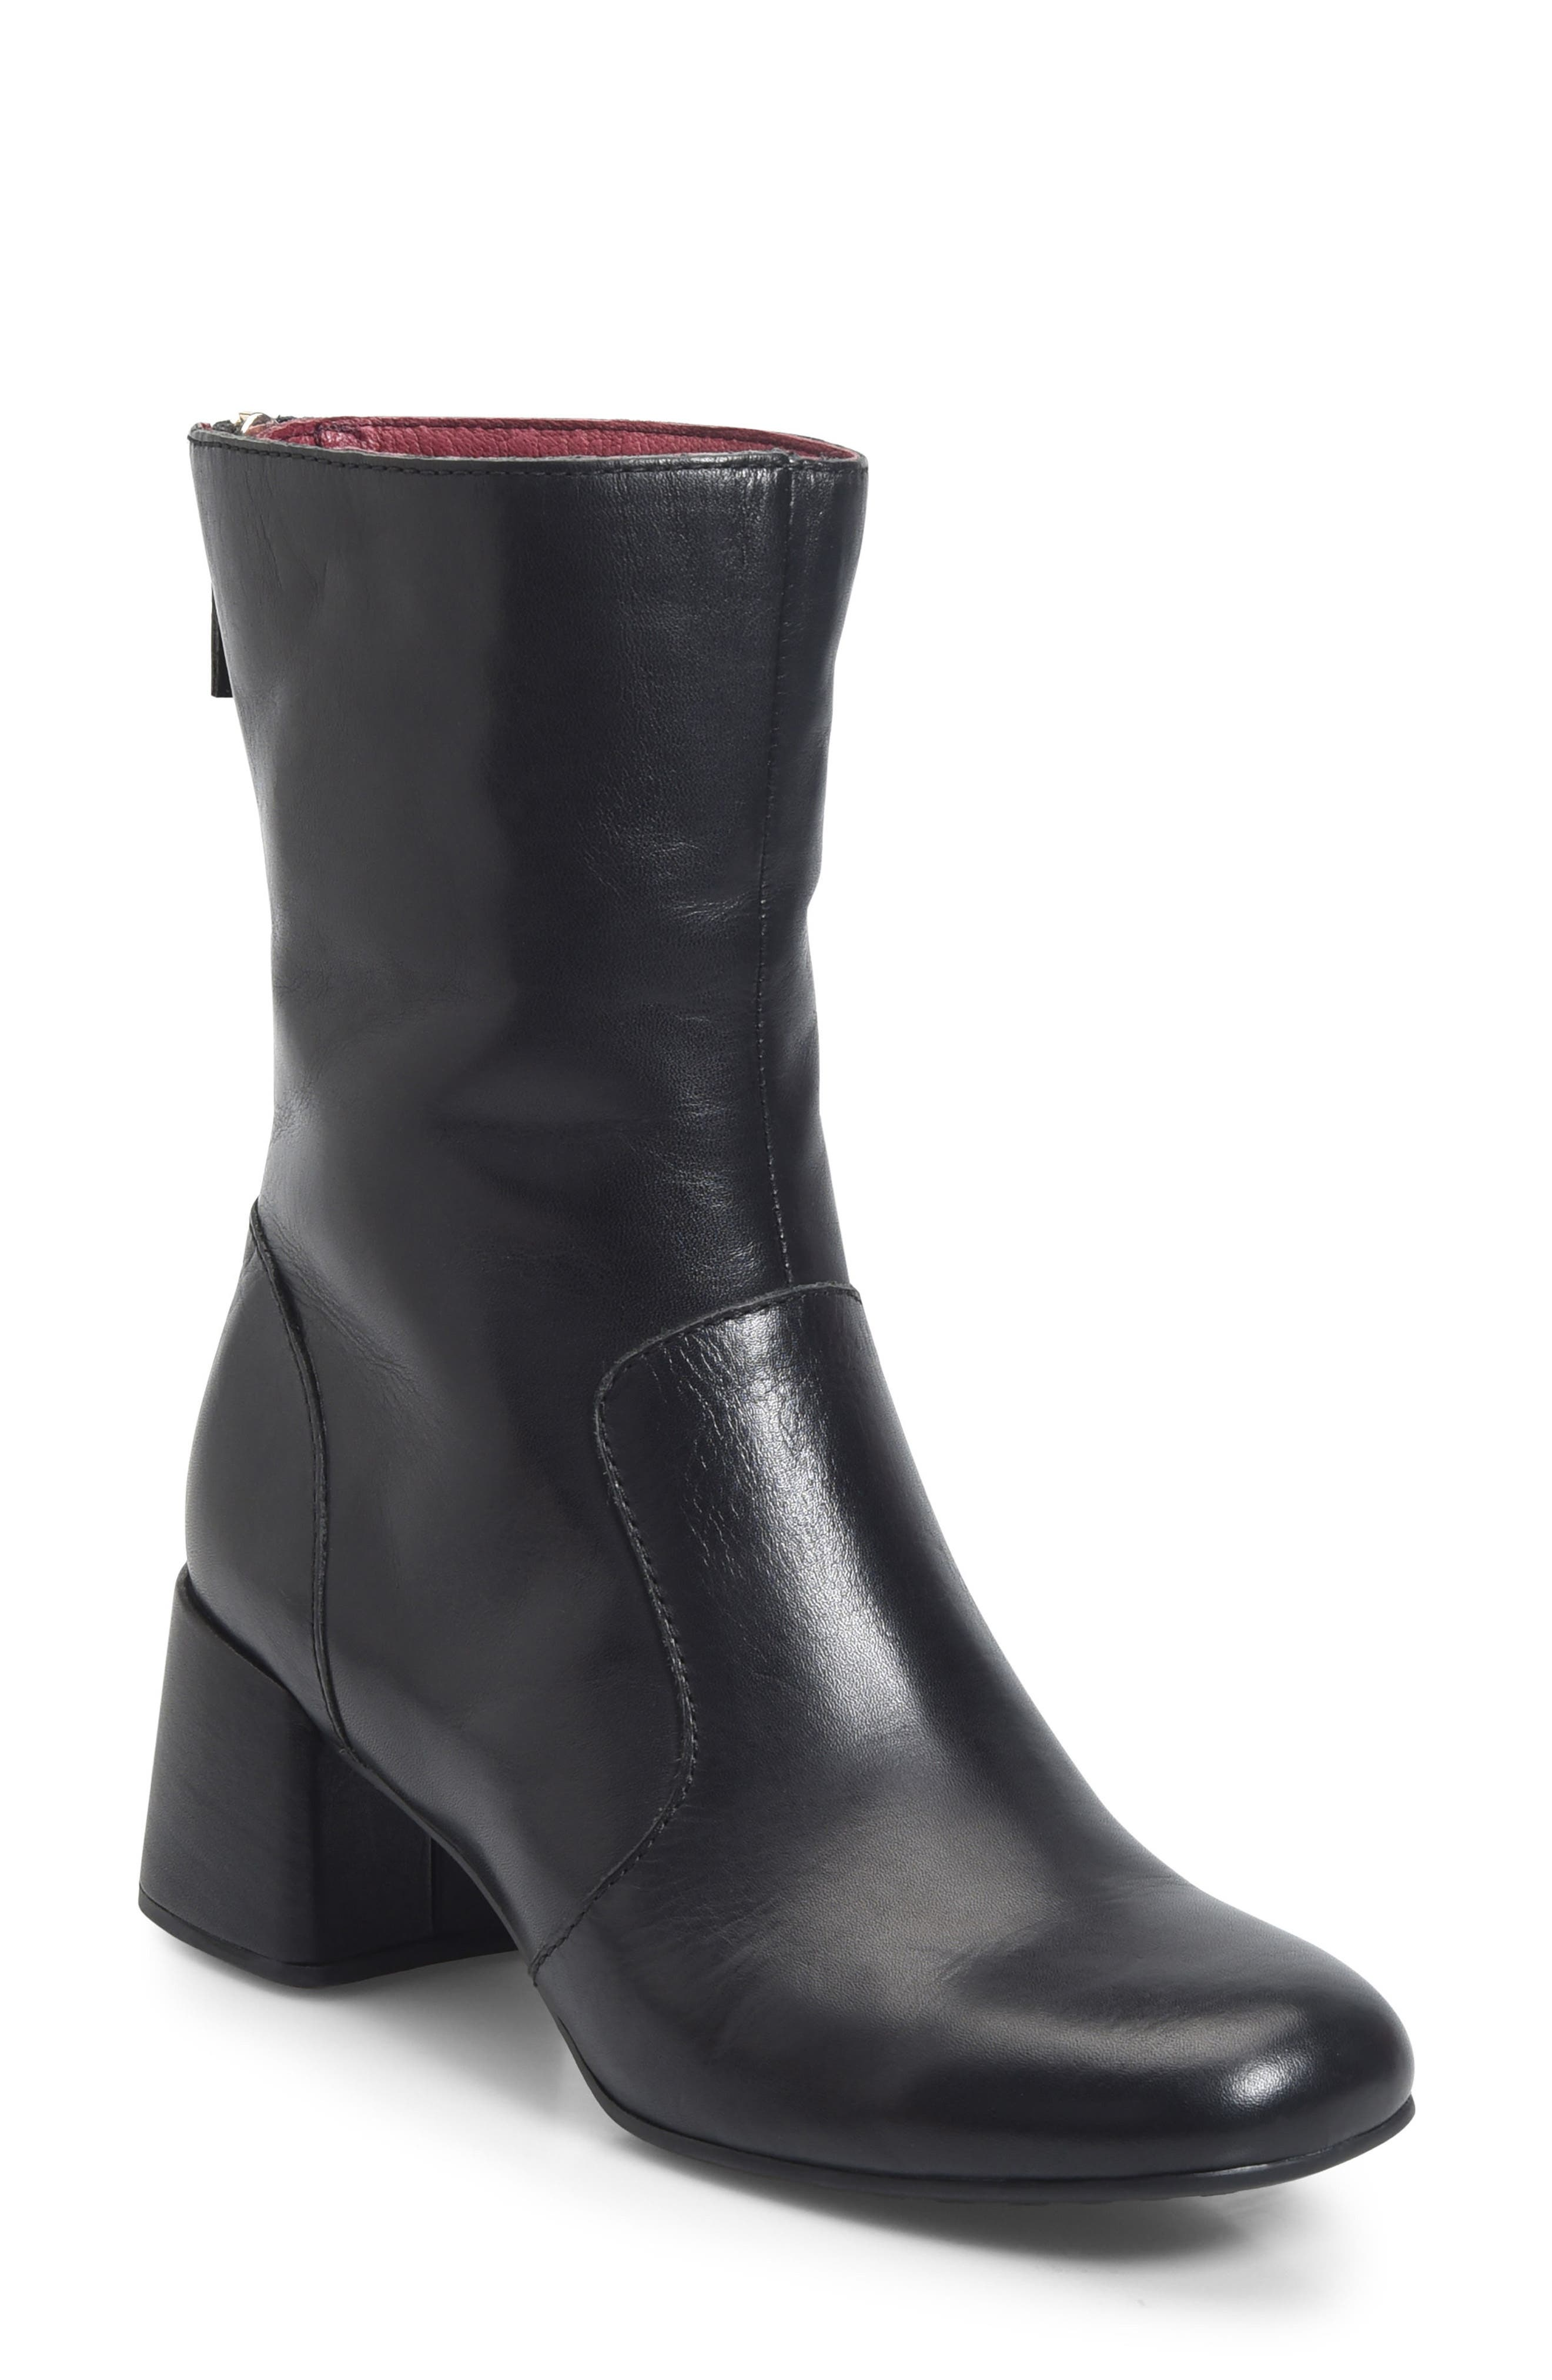 Ono Florence Bootie- Black